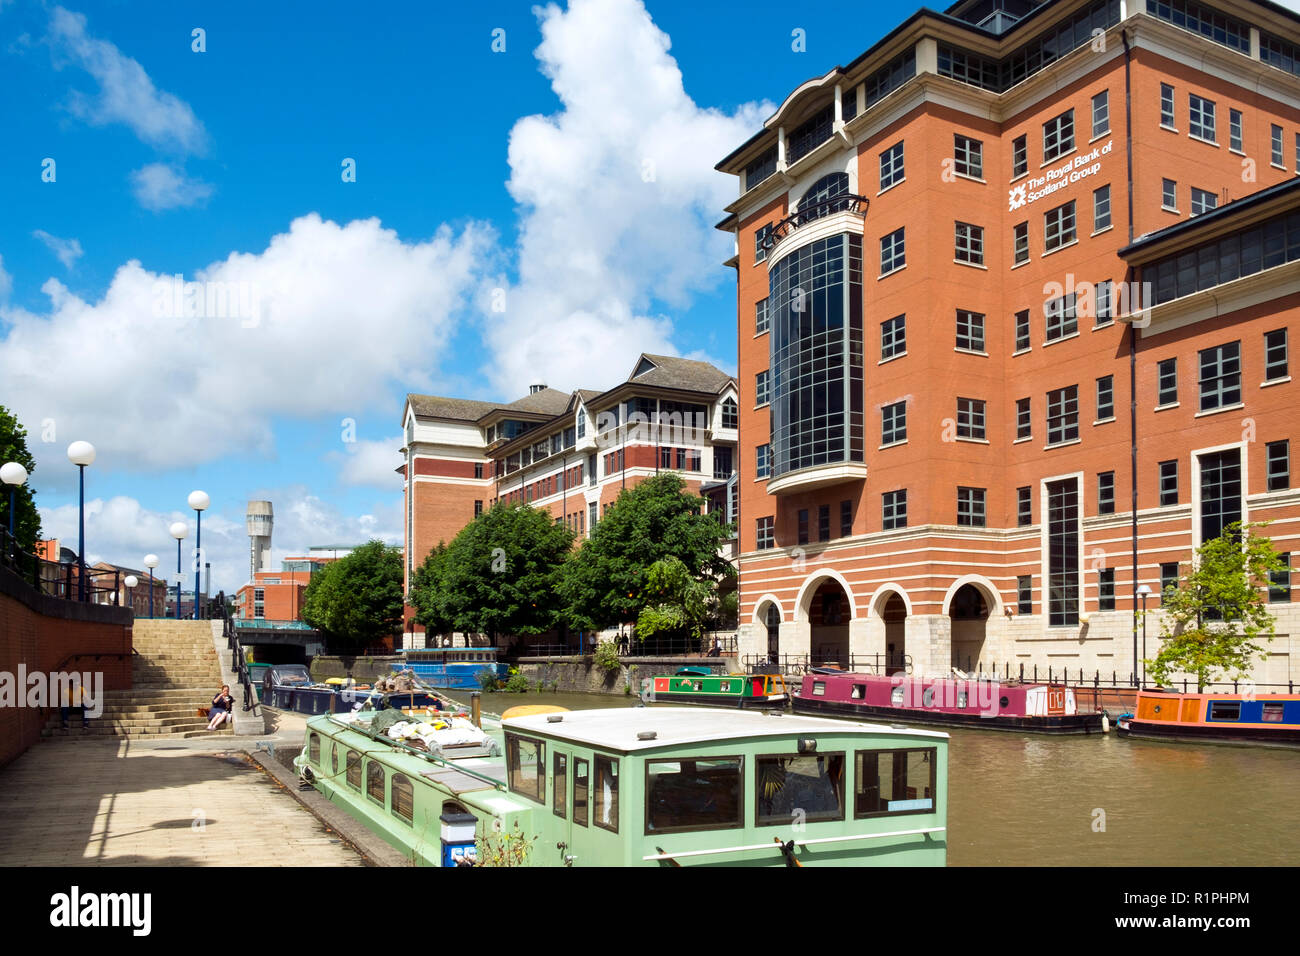 Bristol, UK - 4th August 2016: Moored canal boats and modern office blocks along The Floating Harbour and Temple Back (Temple Quay) regeneration business area in central Bristol City, UK. Workers leave their workplaces during a sunny summertime lunch break. - Stock Image